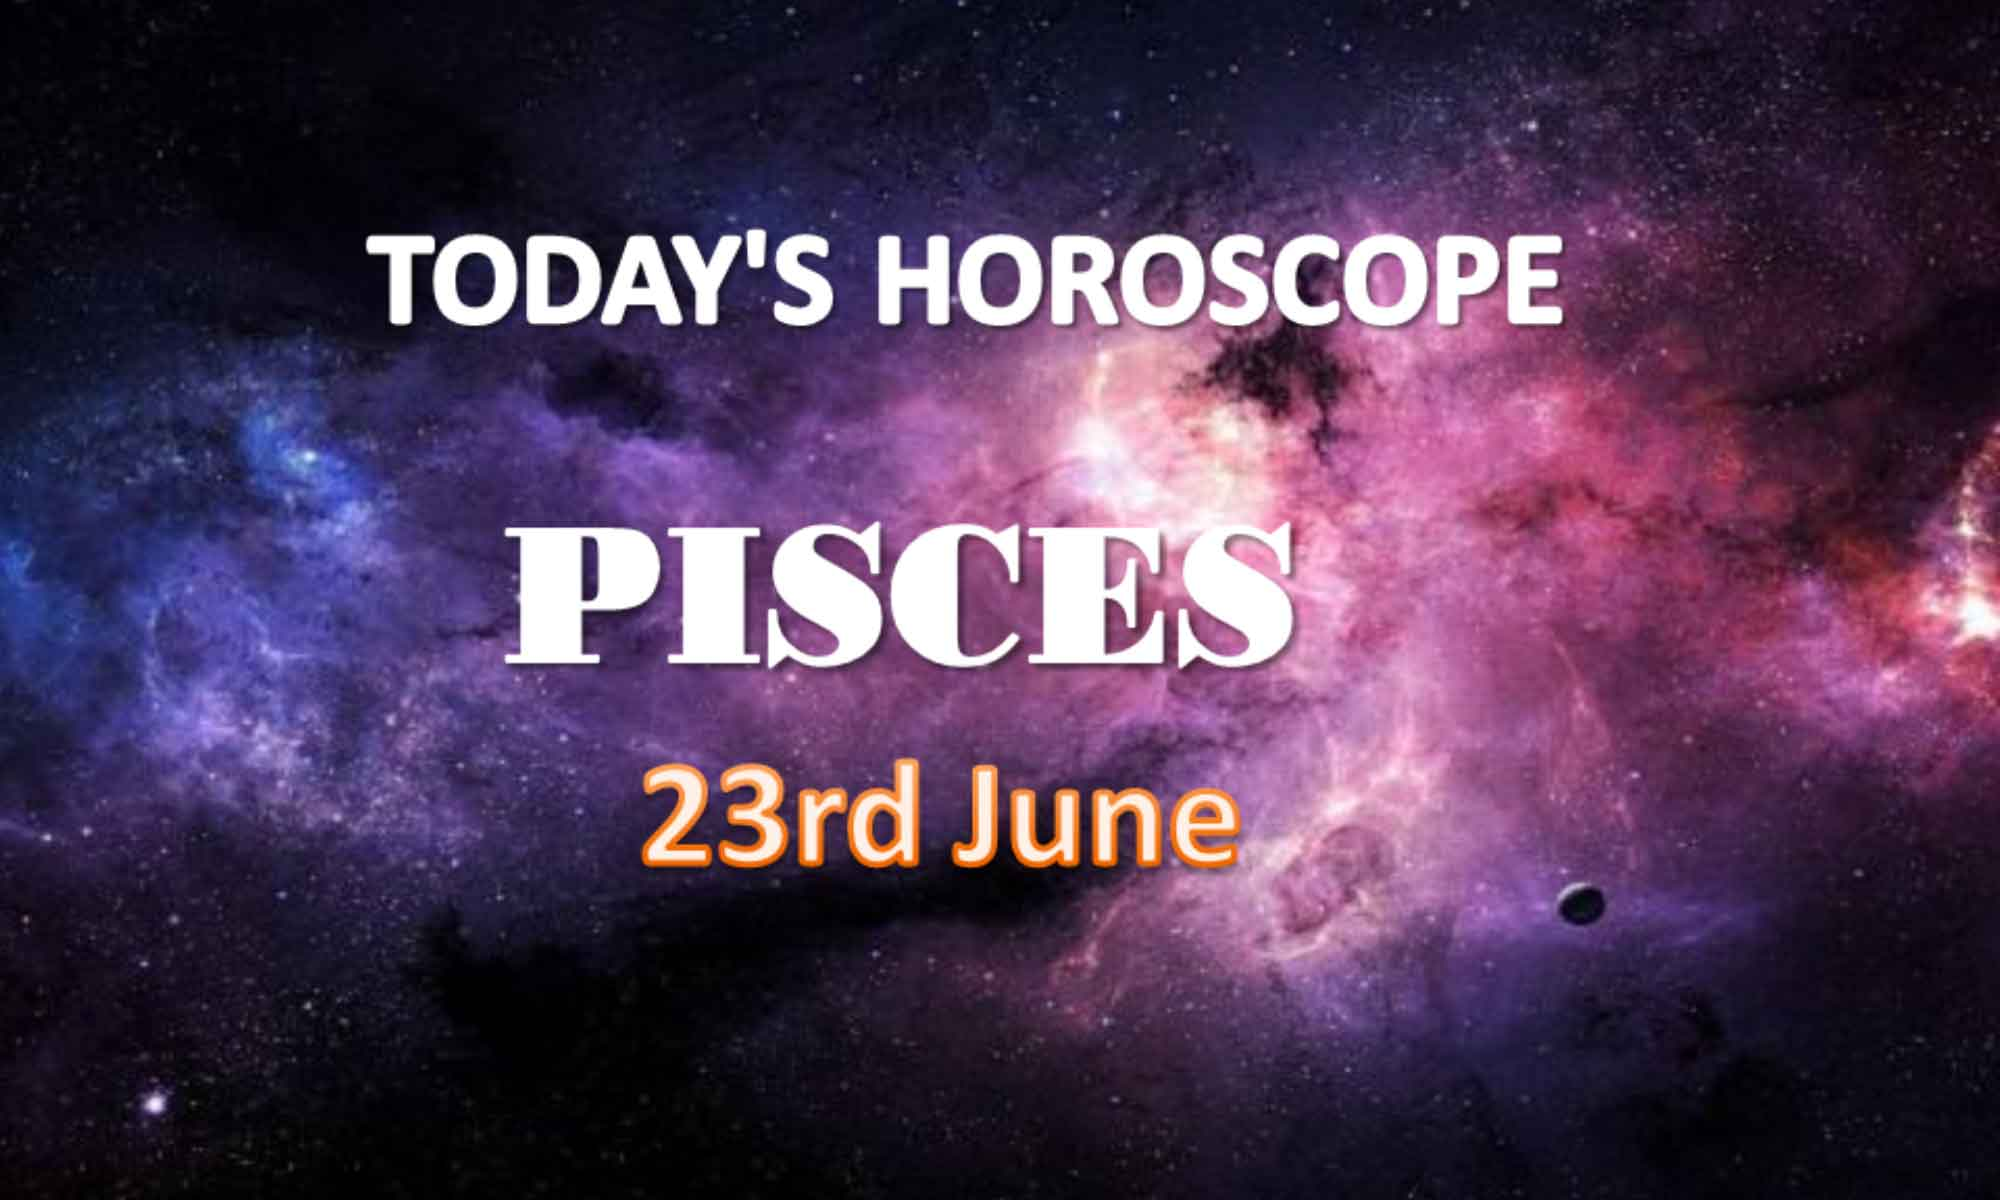 pisces daily horoscope for today wednesday june 23rd 2021